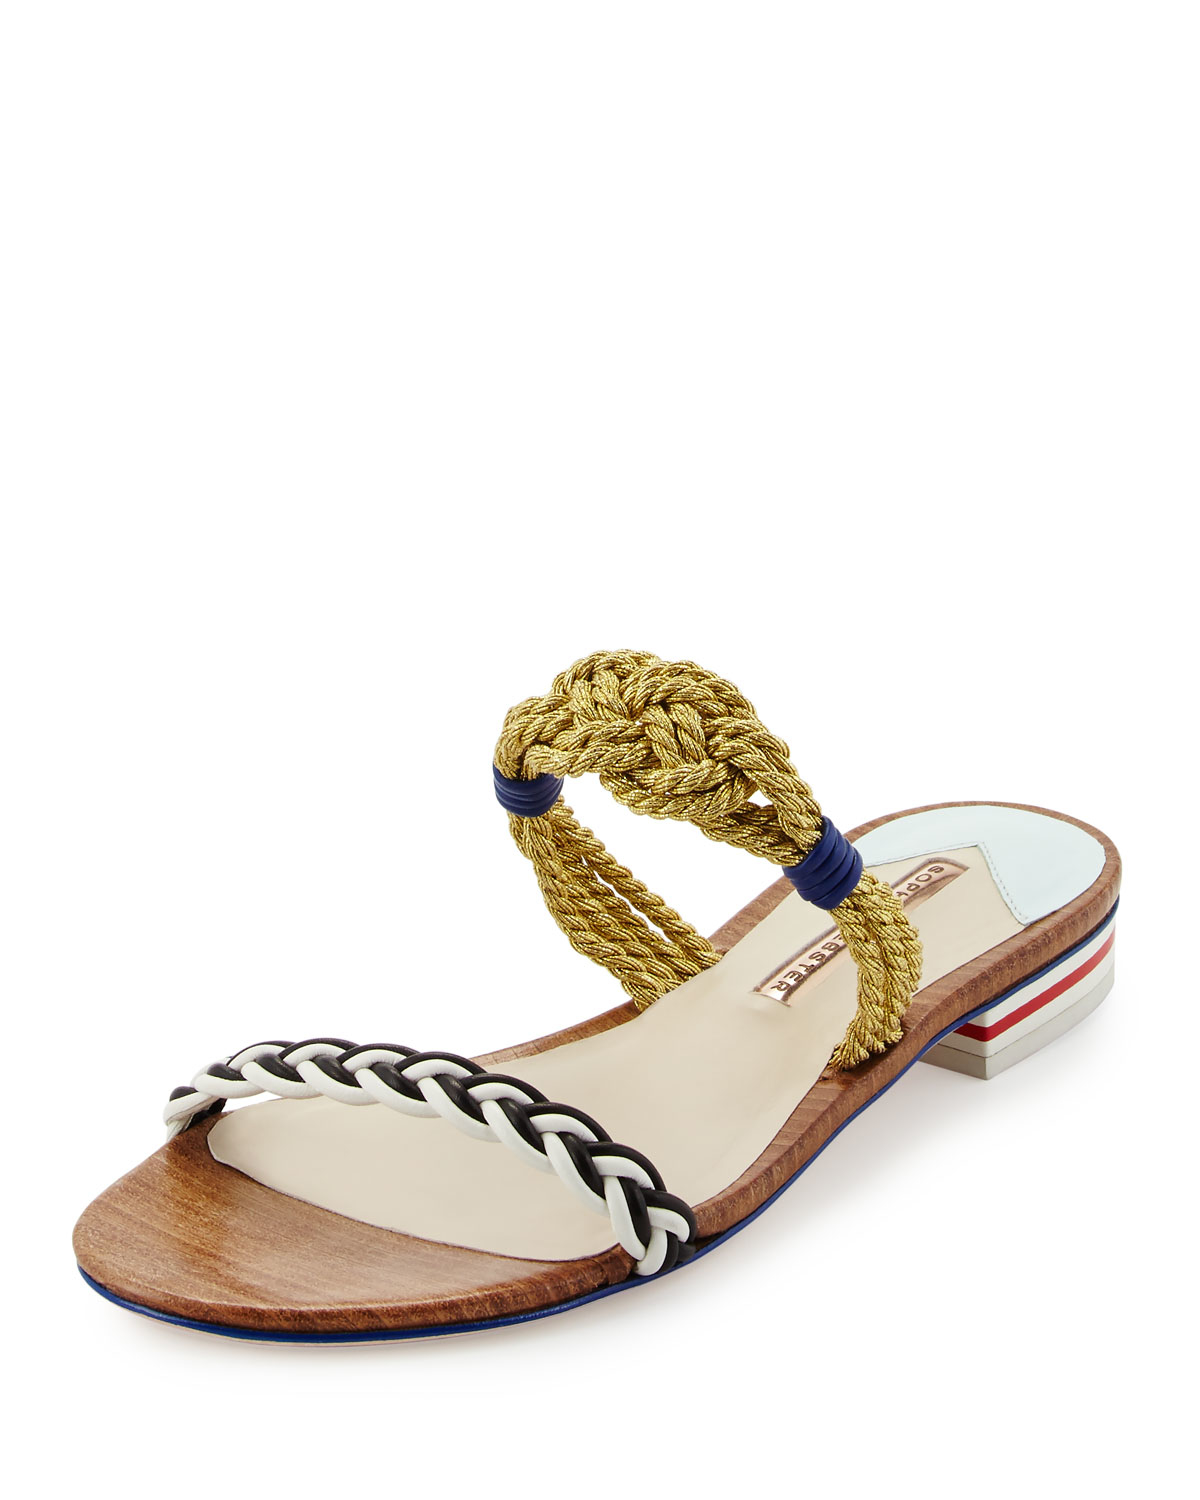 Sophia Webster Perforated Slide Sandals free shipping buy sale best sale Ad6W1M